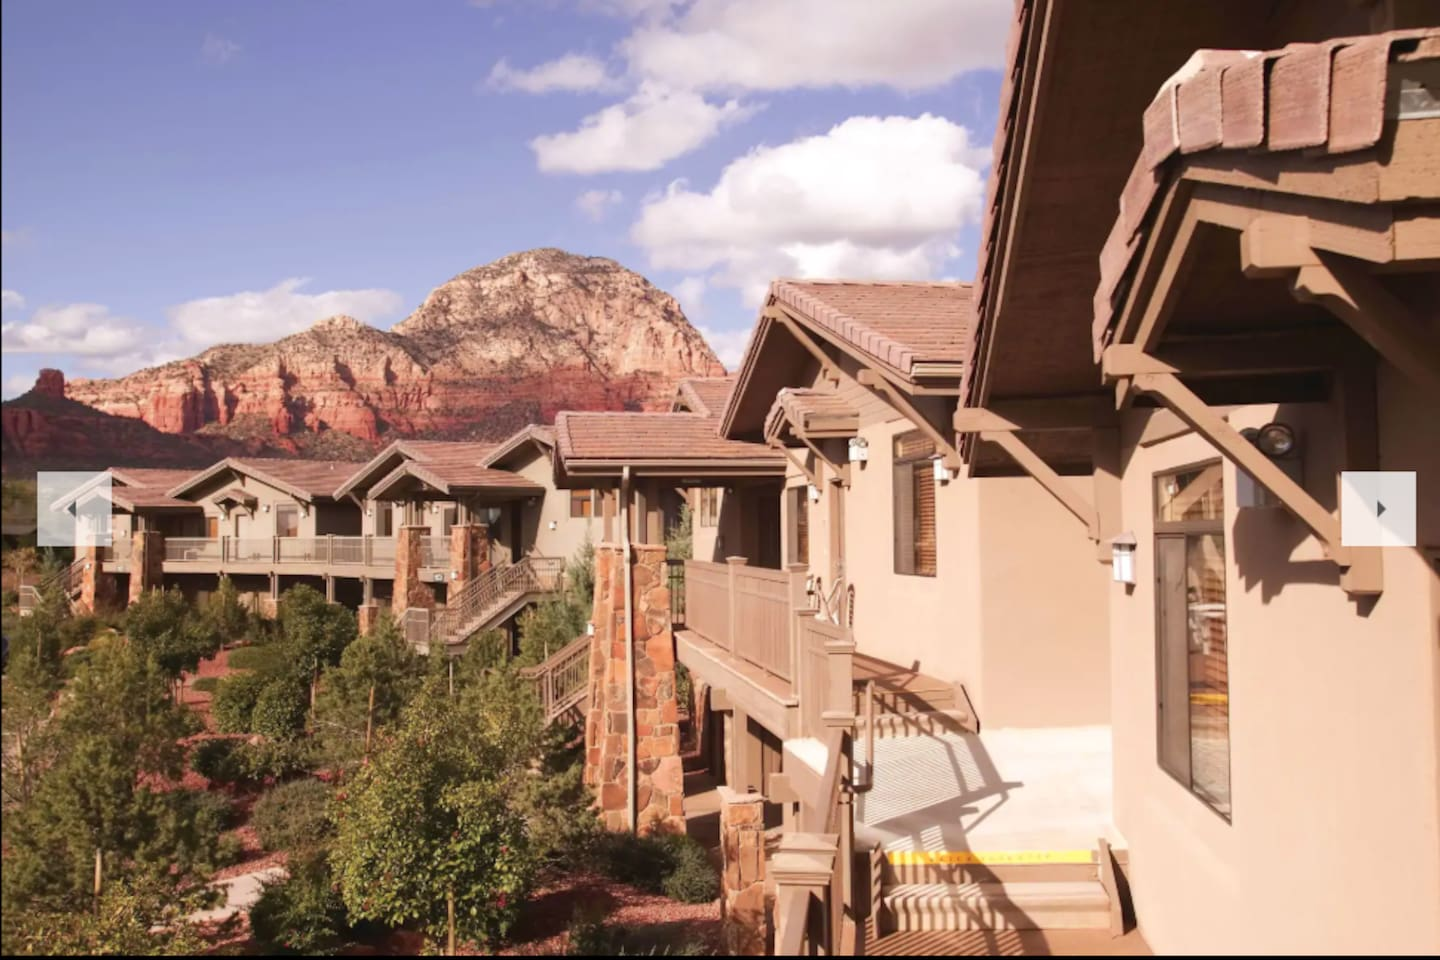 Sedona Resort and Picturesque Mountain View